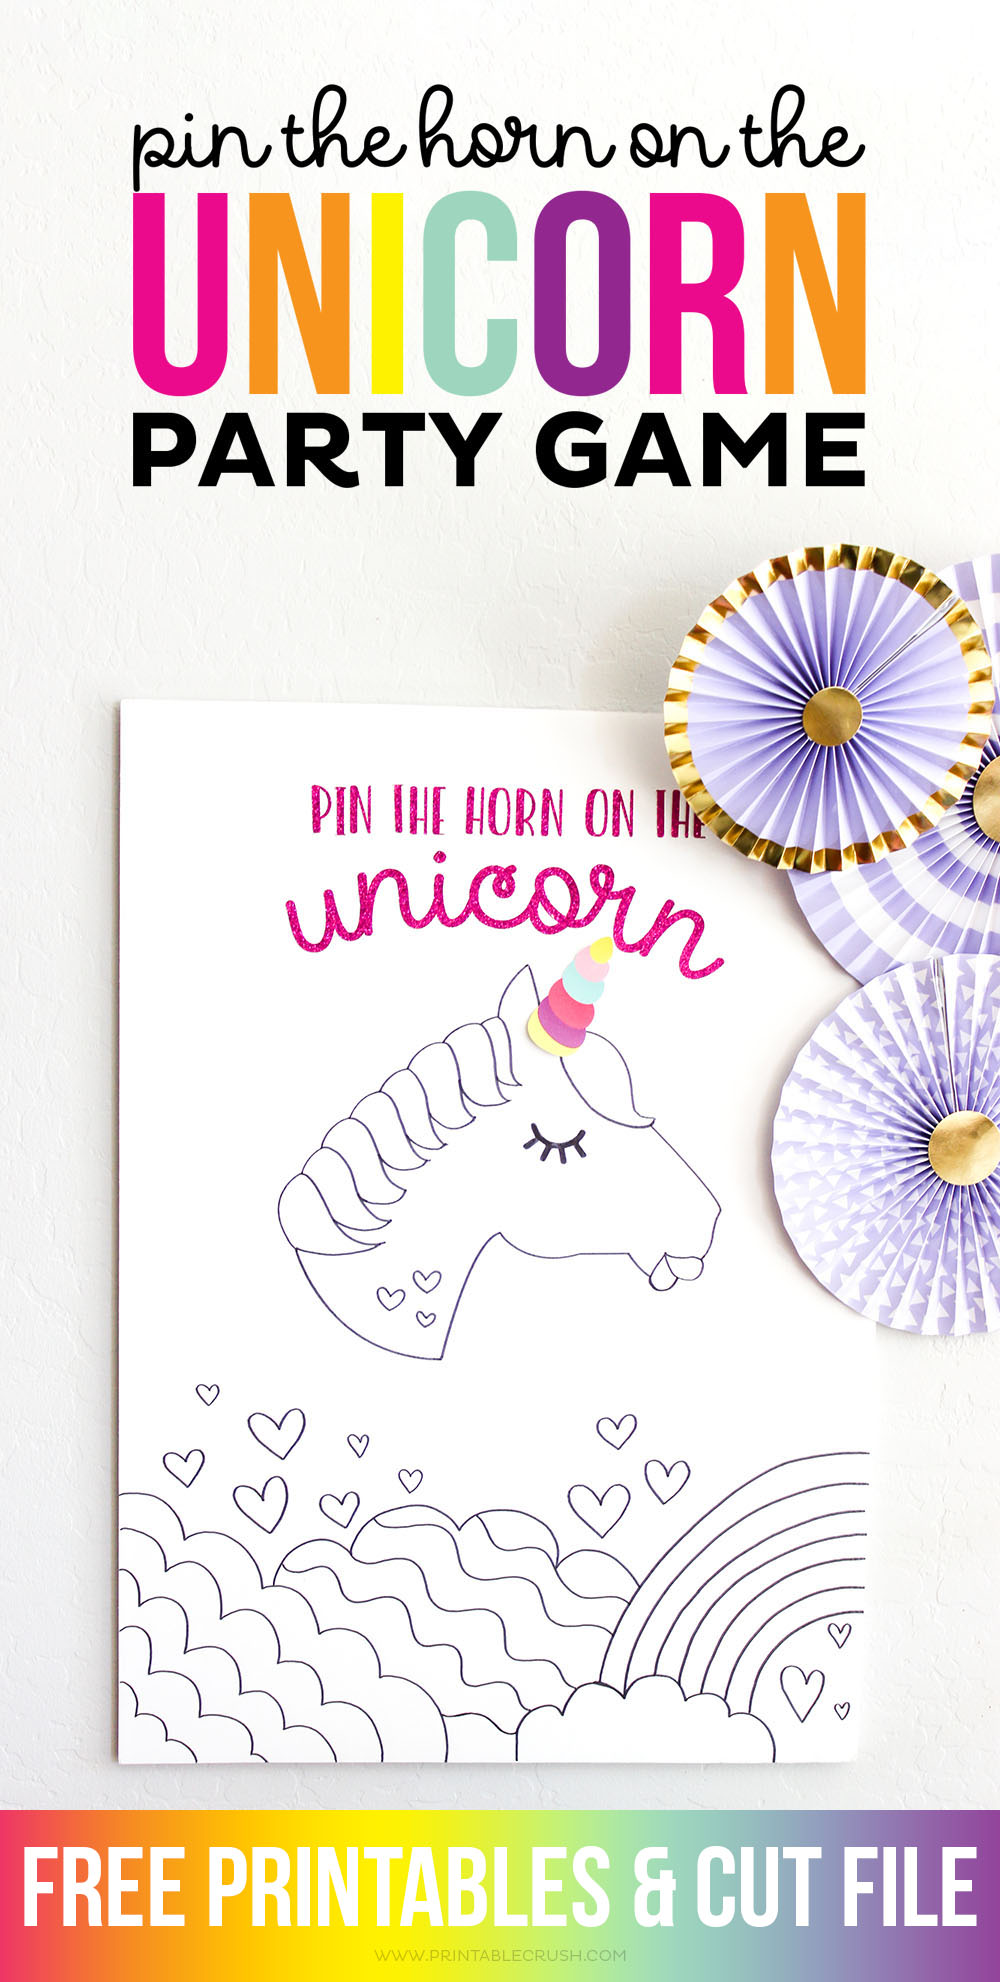 This Pin the Horn on the Unicorn Party Game is adorable and so easy to create with free Cricut Cut Files!